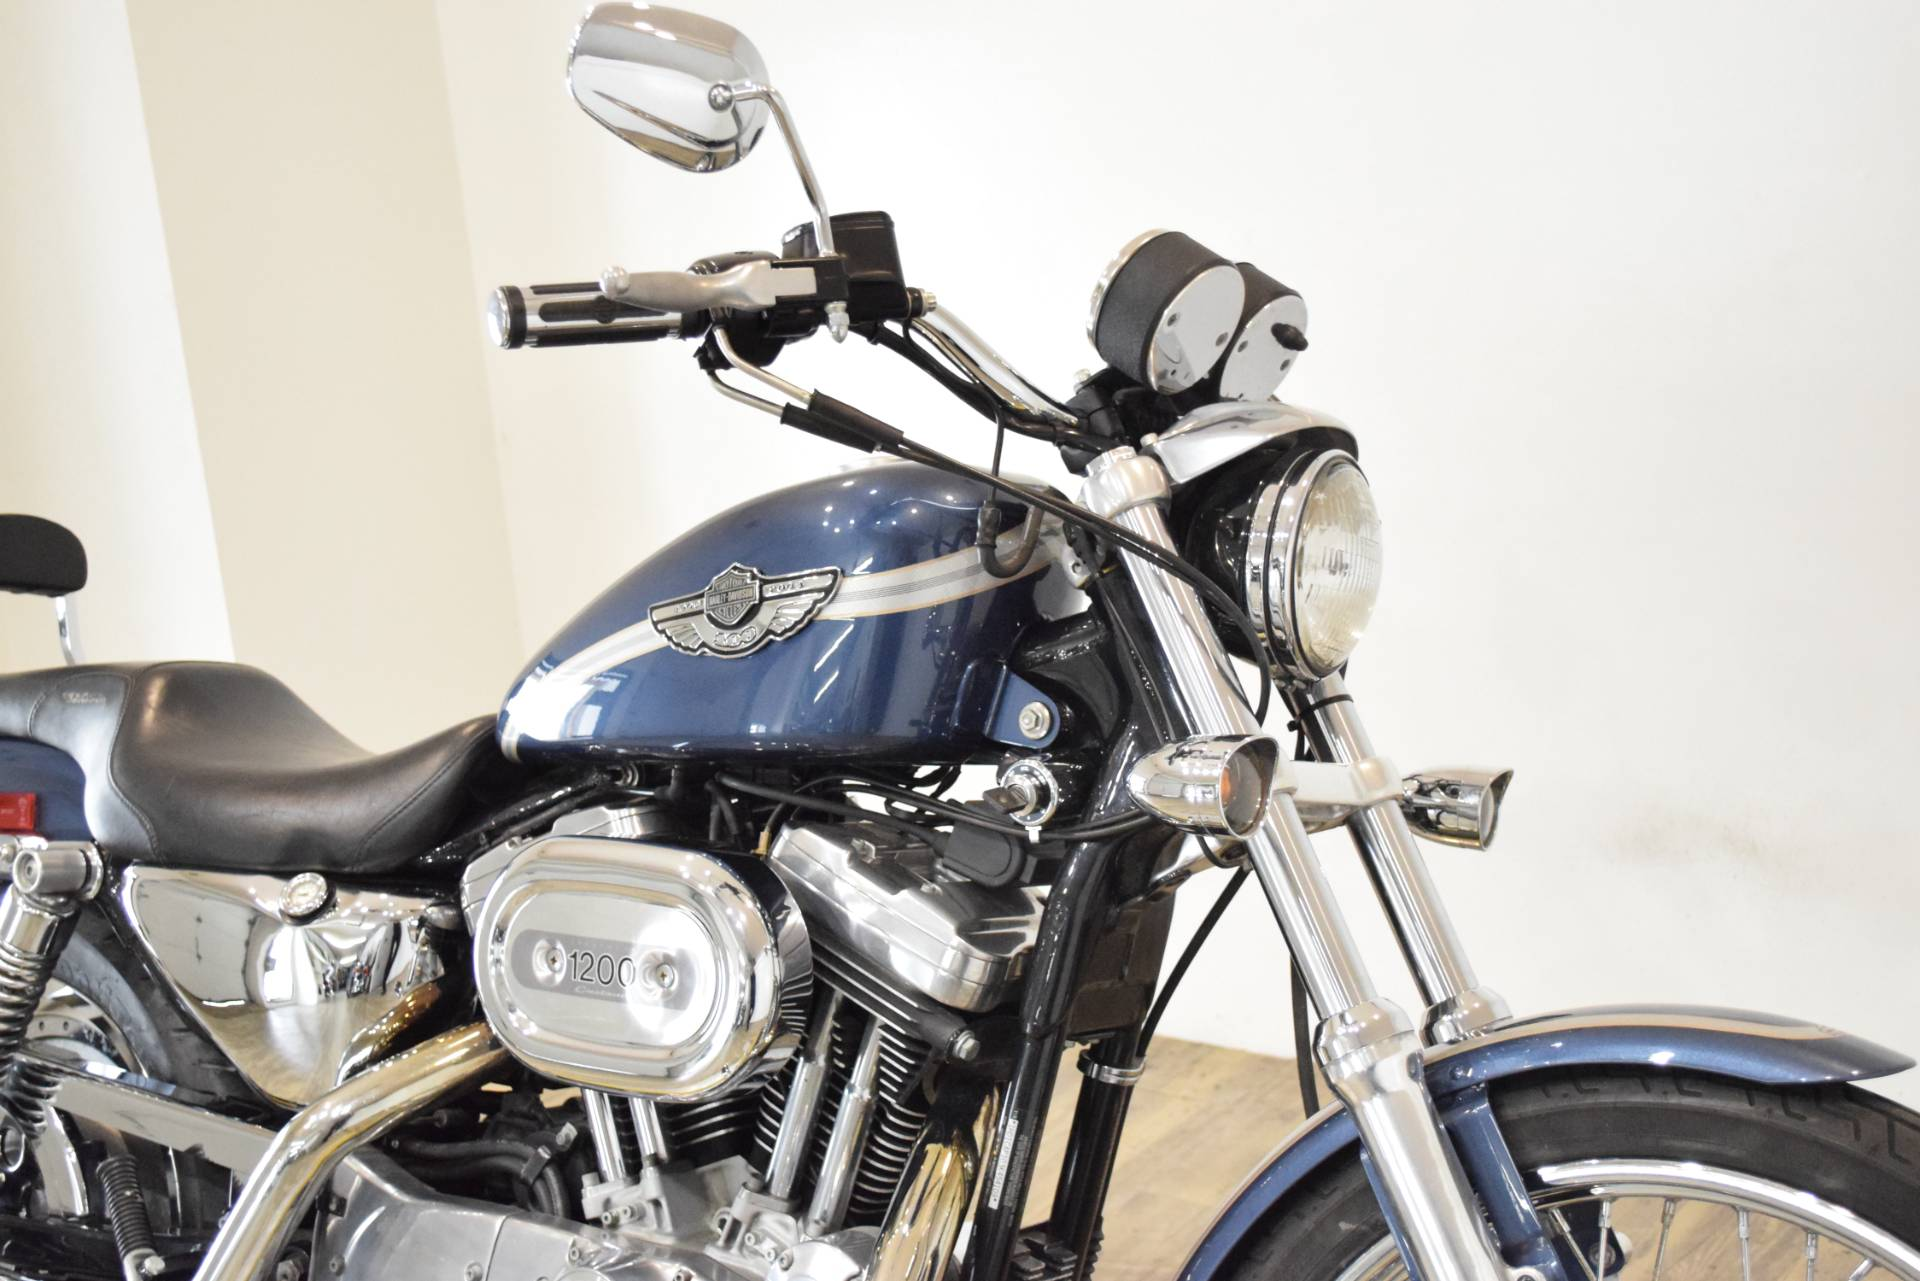 2003 Harley-Davidson XL 1200C Sportster® 1200 Custom in Wauconda, Illinois - Photo 3